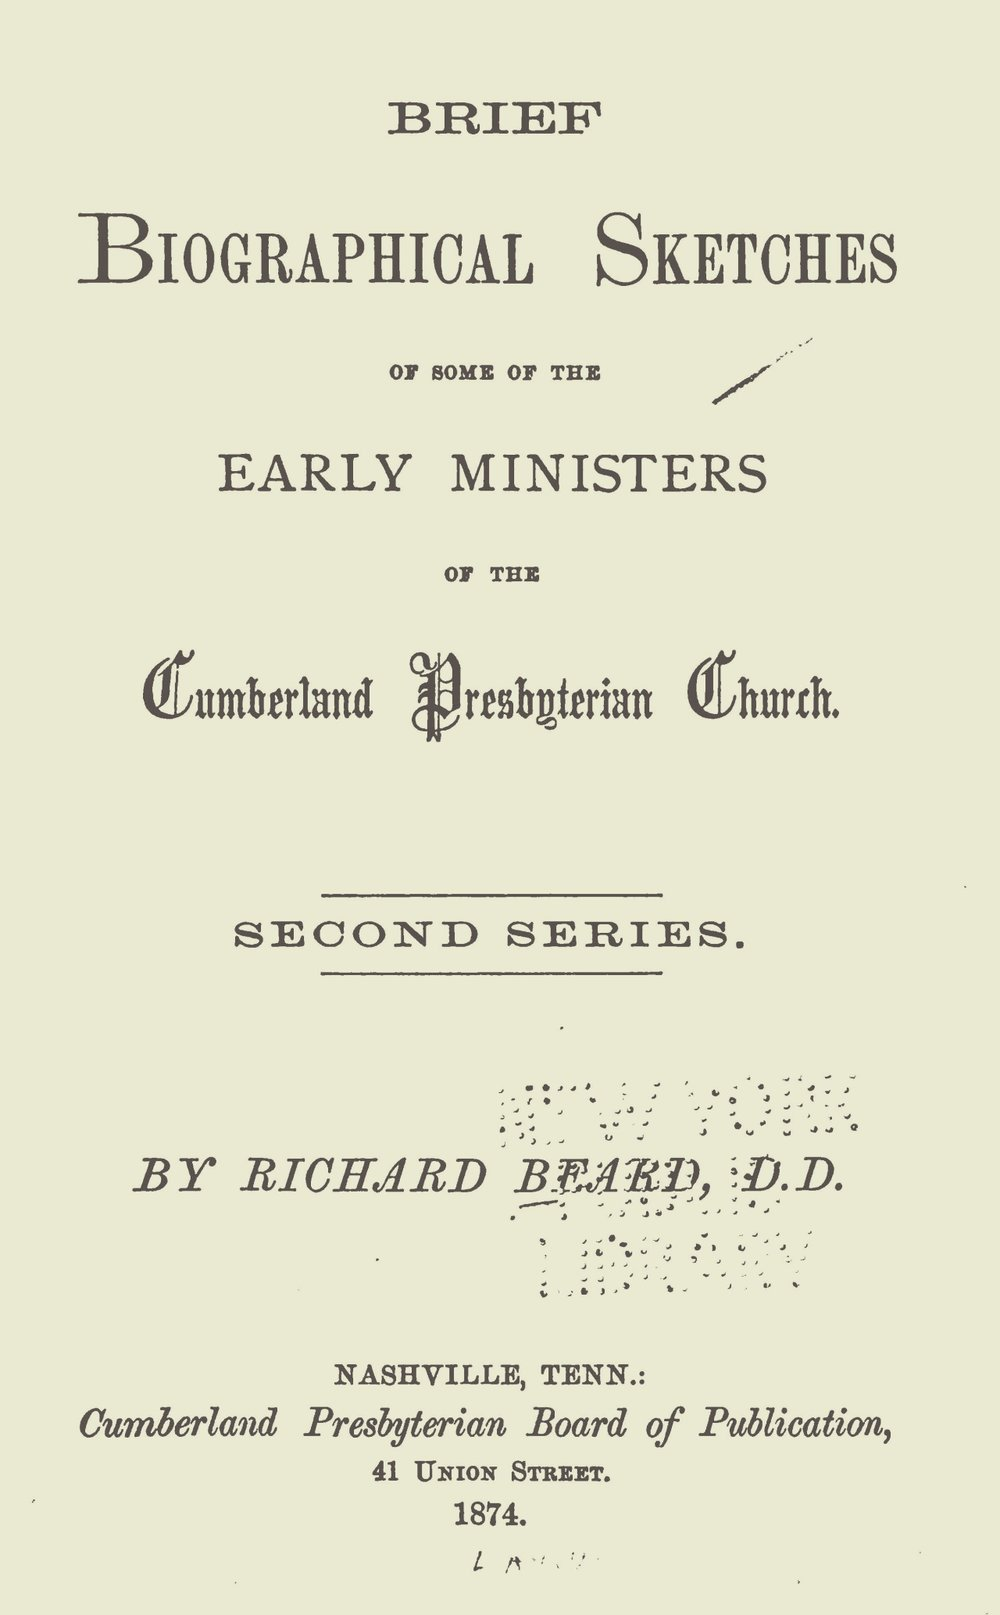 Beard, Richard, Brief Biographical Sketches, Second Series Title Page.jpg